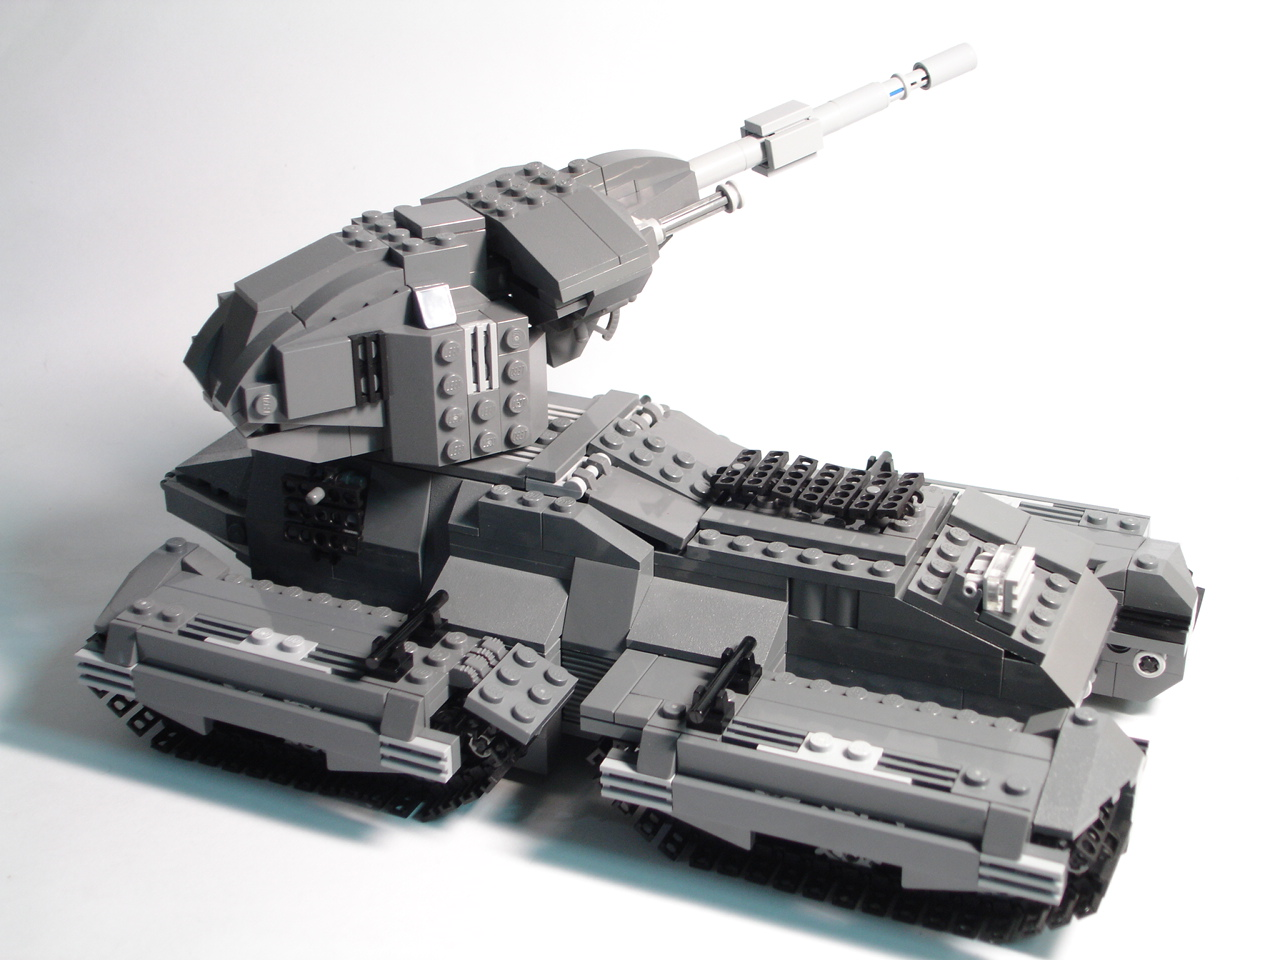 halo scorpion tank a lego creation by stephen chao mocpages com